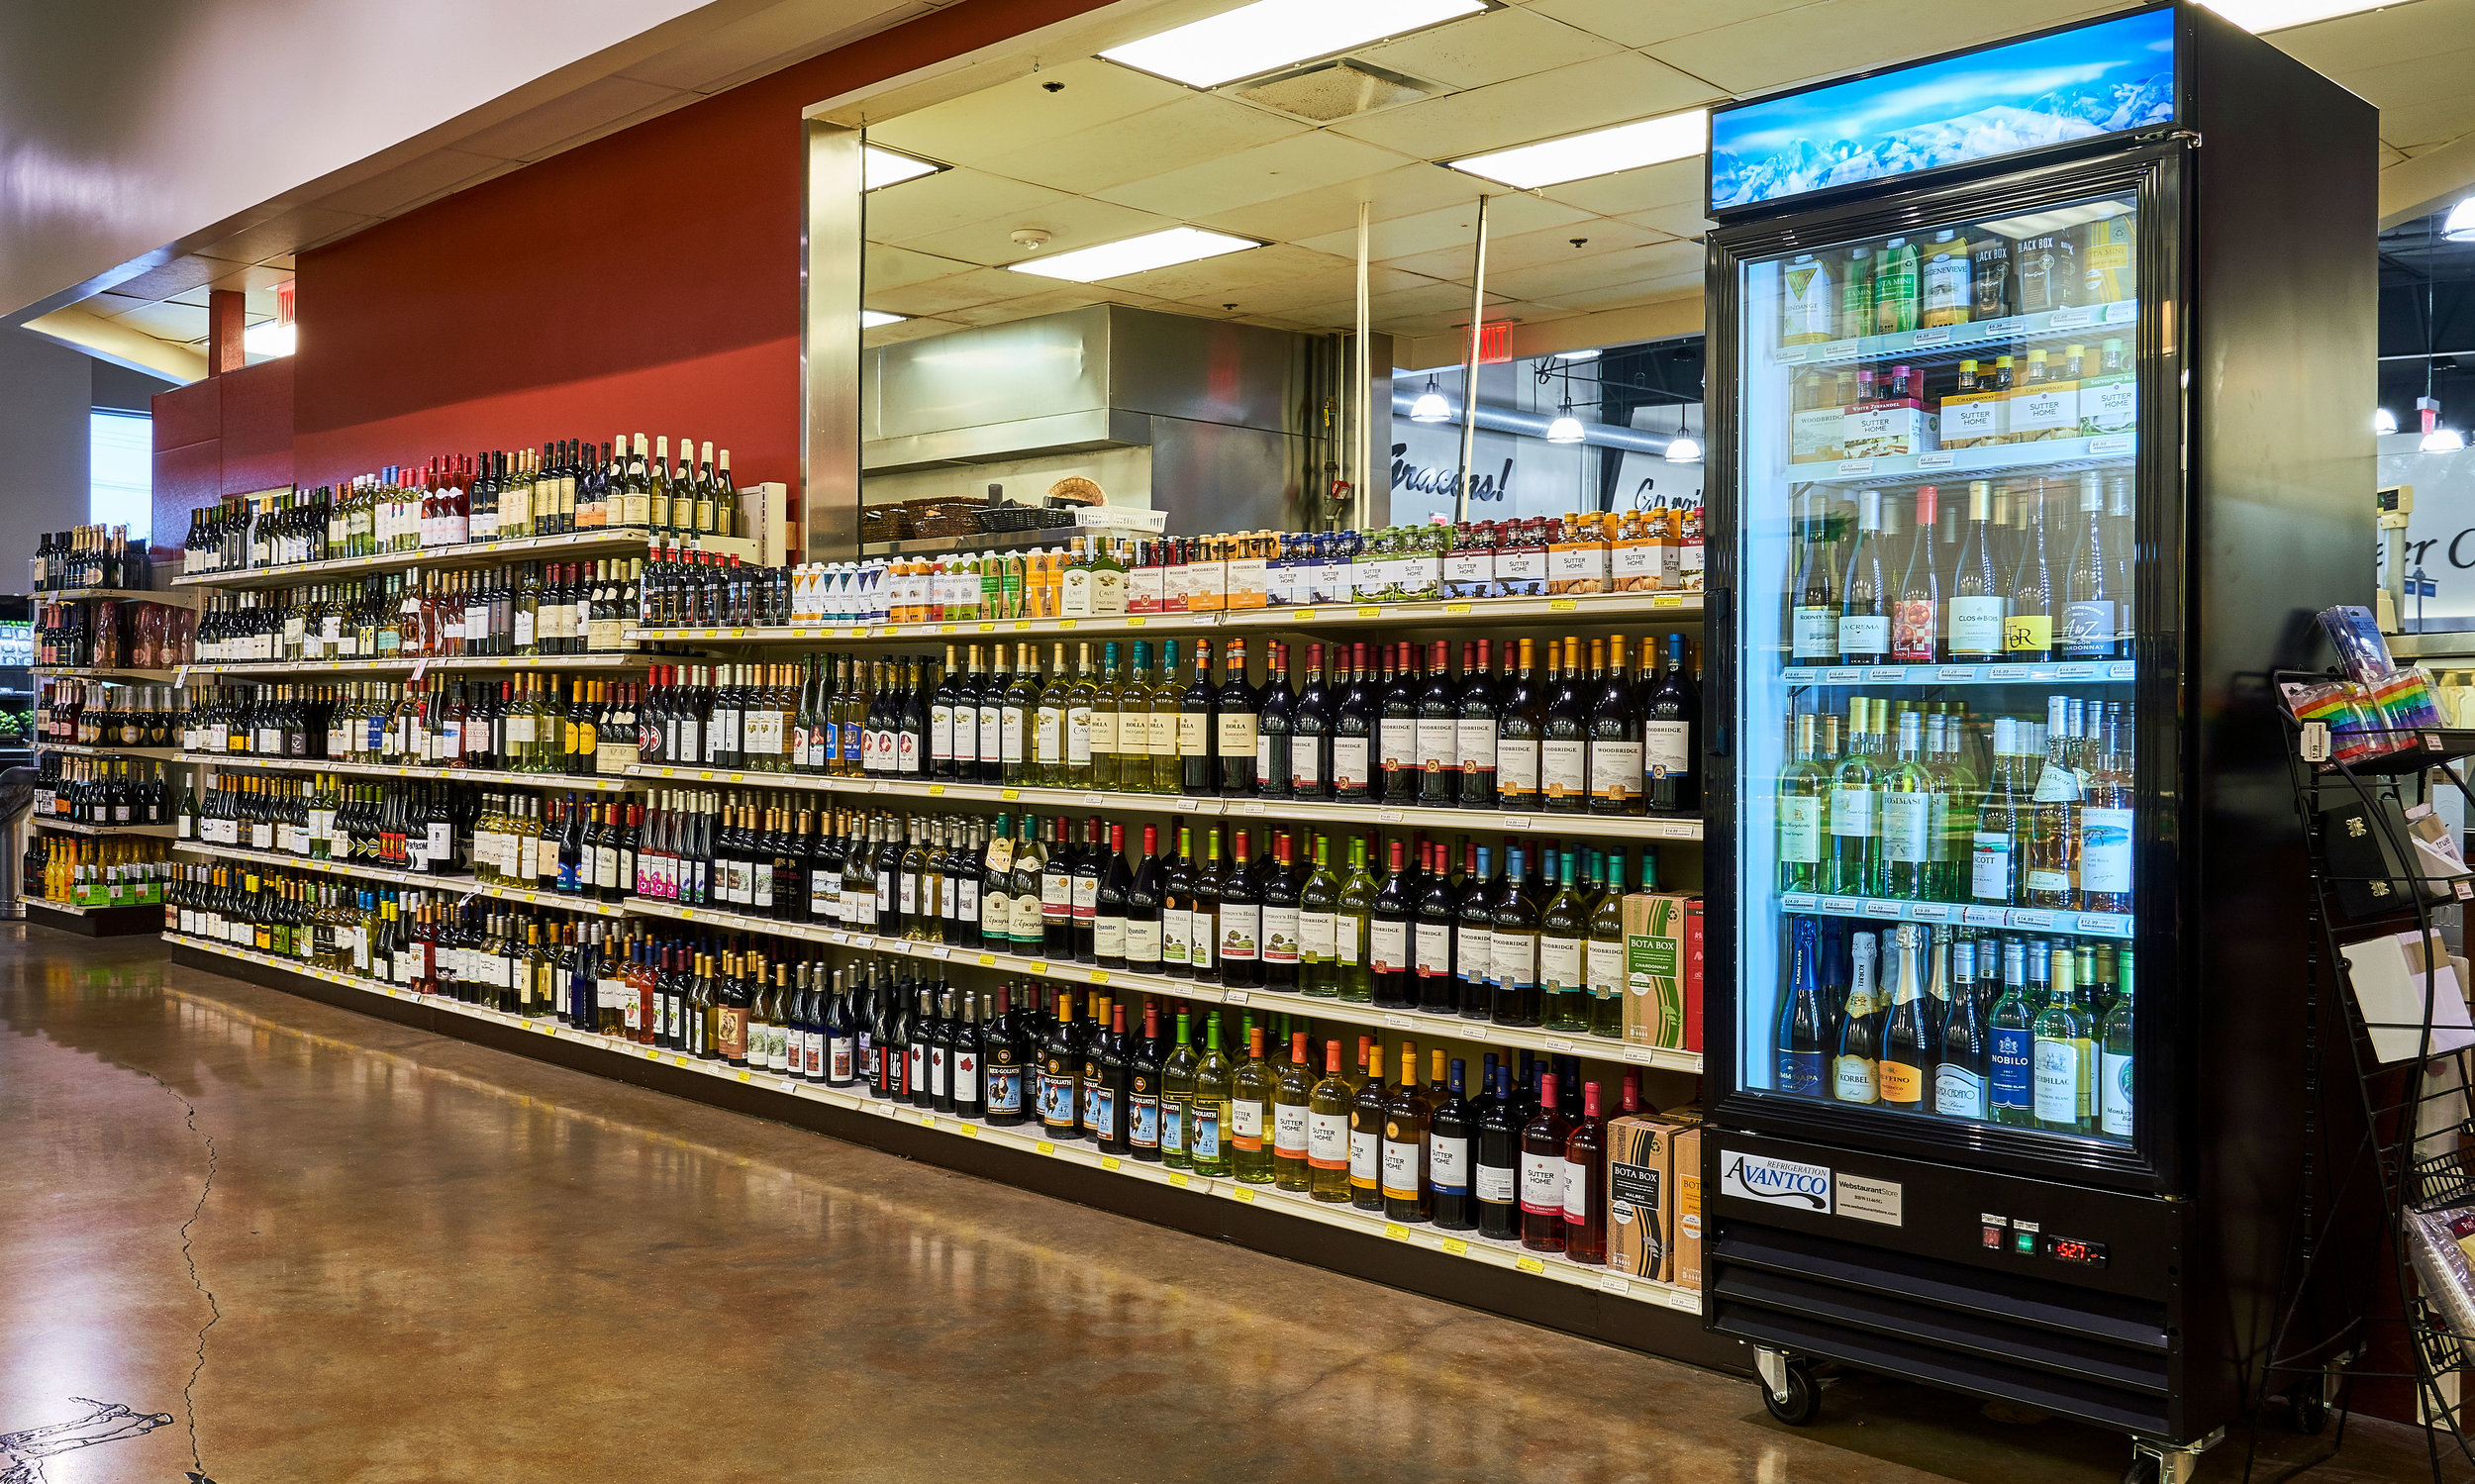 Horseshoe Bay's largest selection of beer & wine is offered at Bayside Fresh Market.